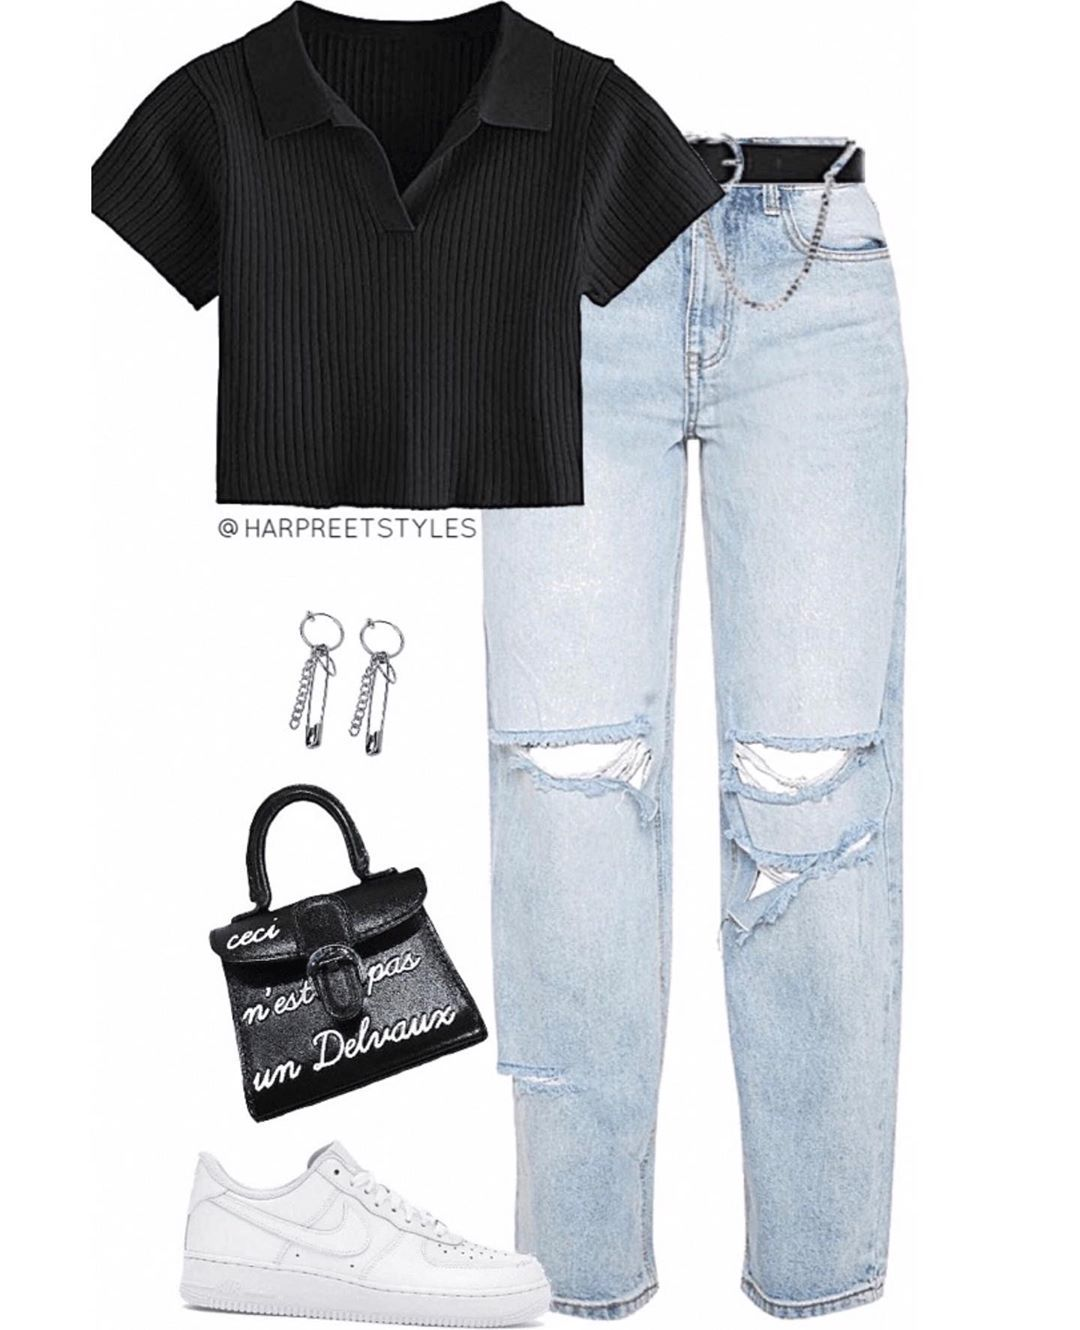 Virtual Stylist On Instagram Cool Kid Prettylittlething Nikeairforce1 Virtualstylist Vi In 2020 Fashion Inspo Outfits Retro Outfits Cute Casual Outfits